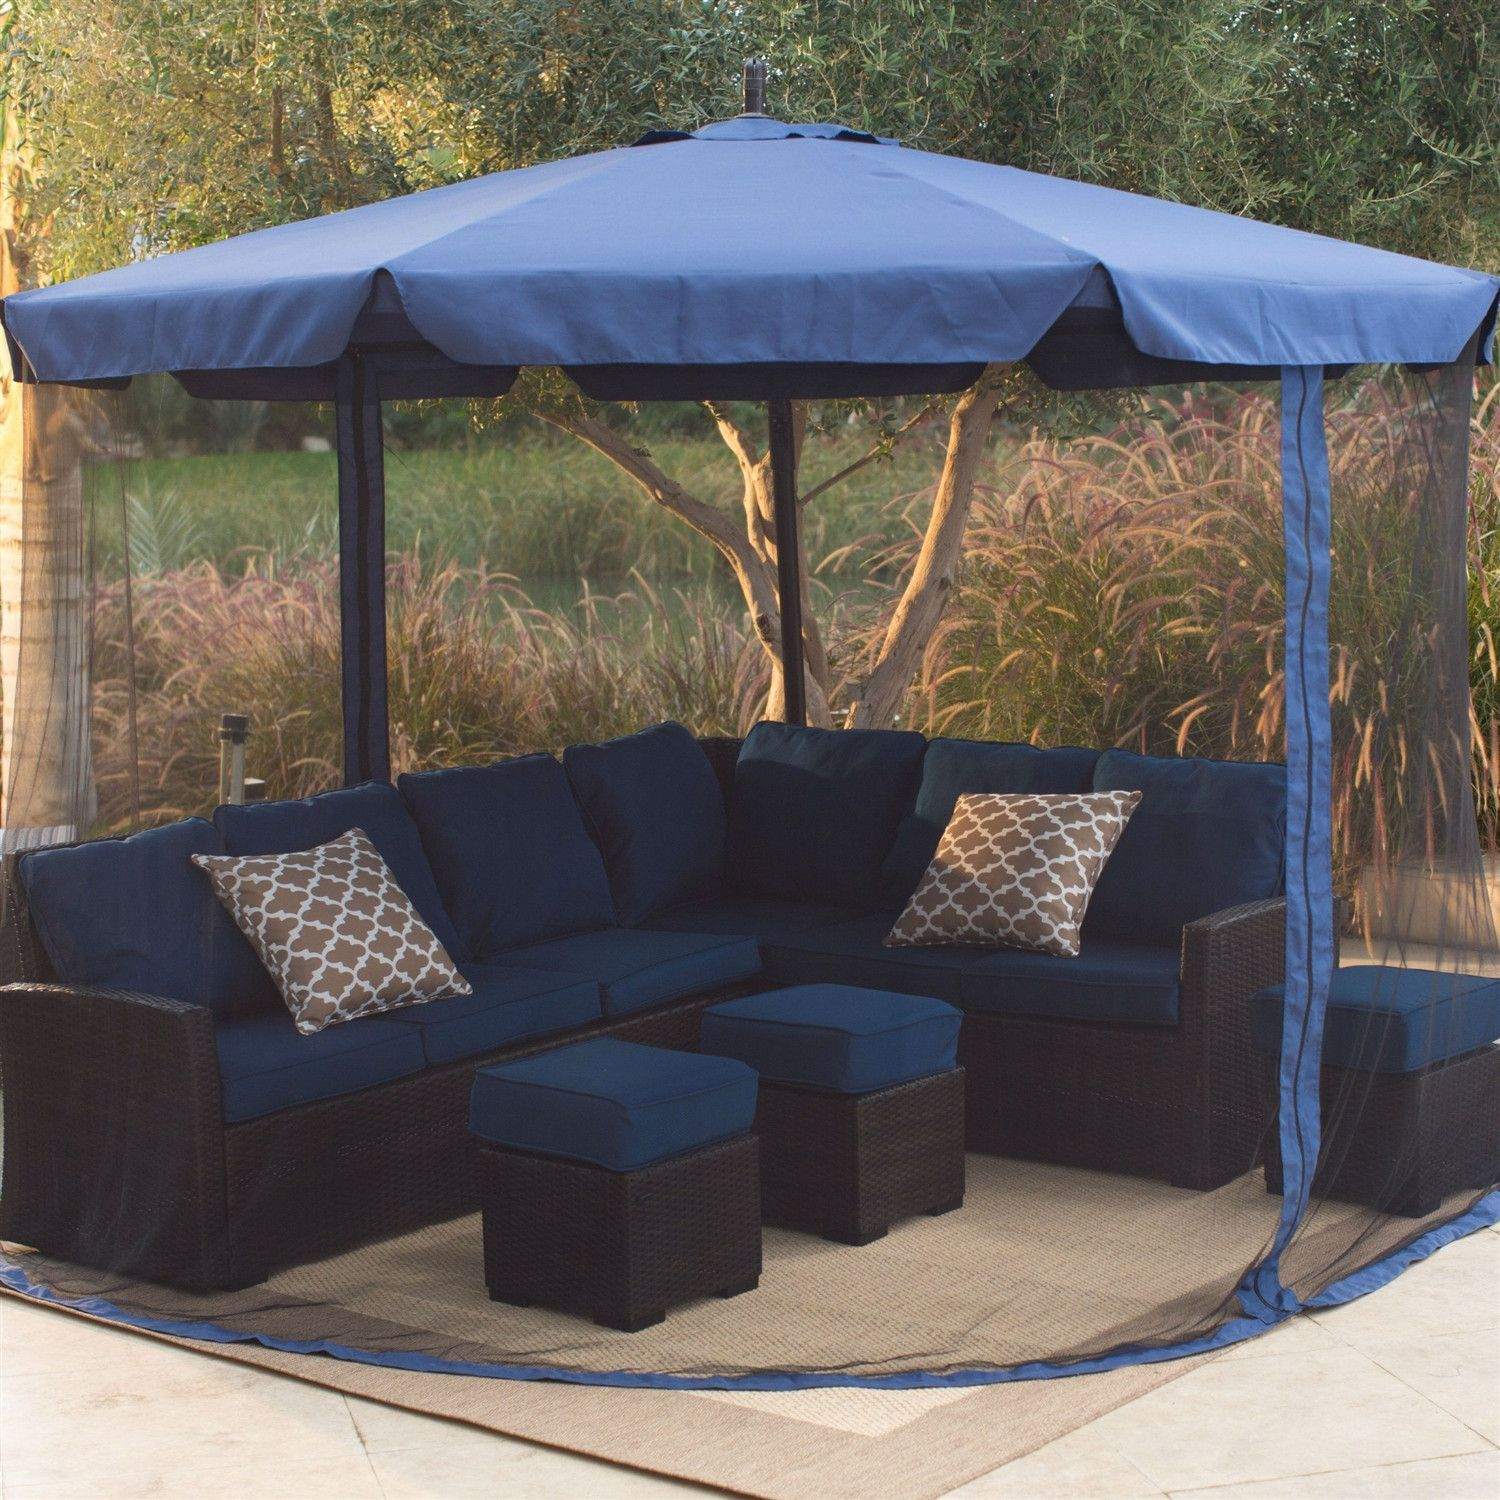 Superbe 11Ft Cantilever Crank Lift Patio Umbrella In Blue With Removable Netting